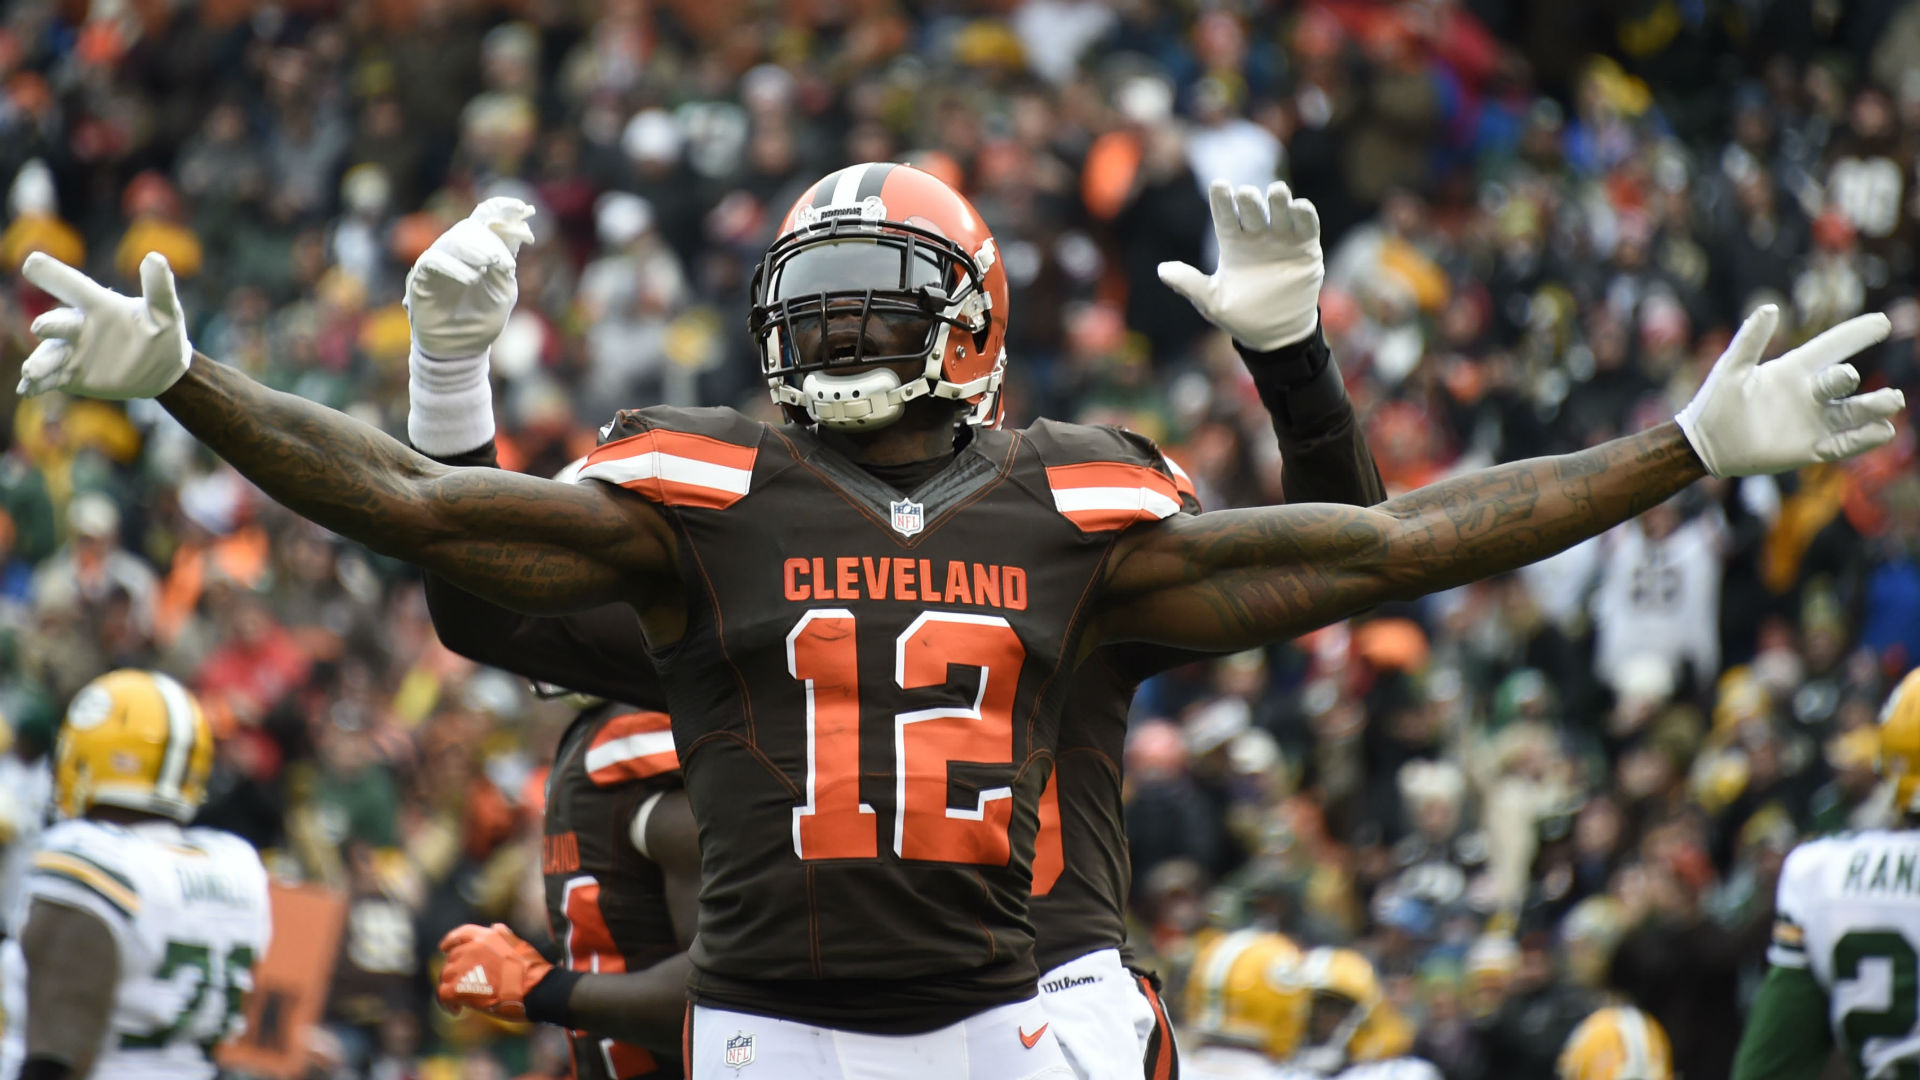 Details emerge about Browns' decision to part ways with Josh Gordon